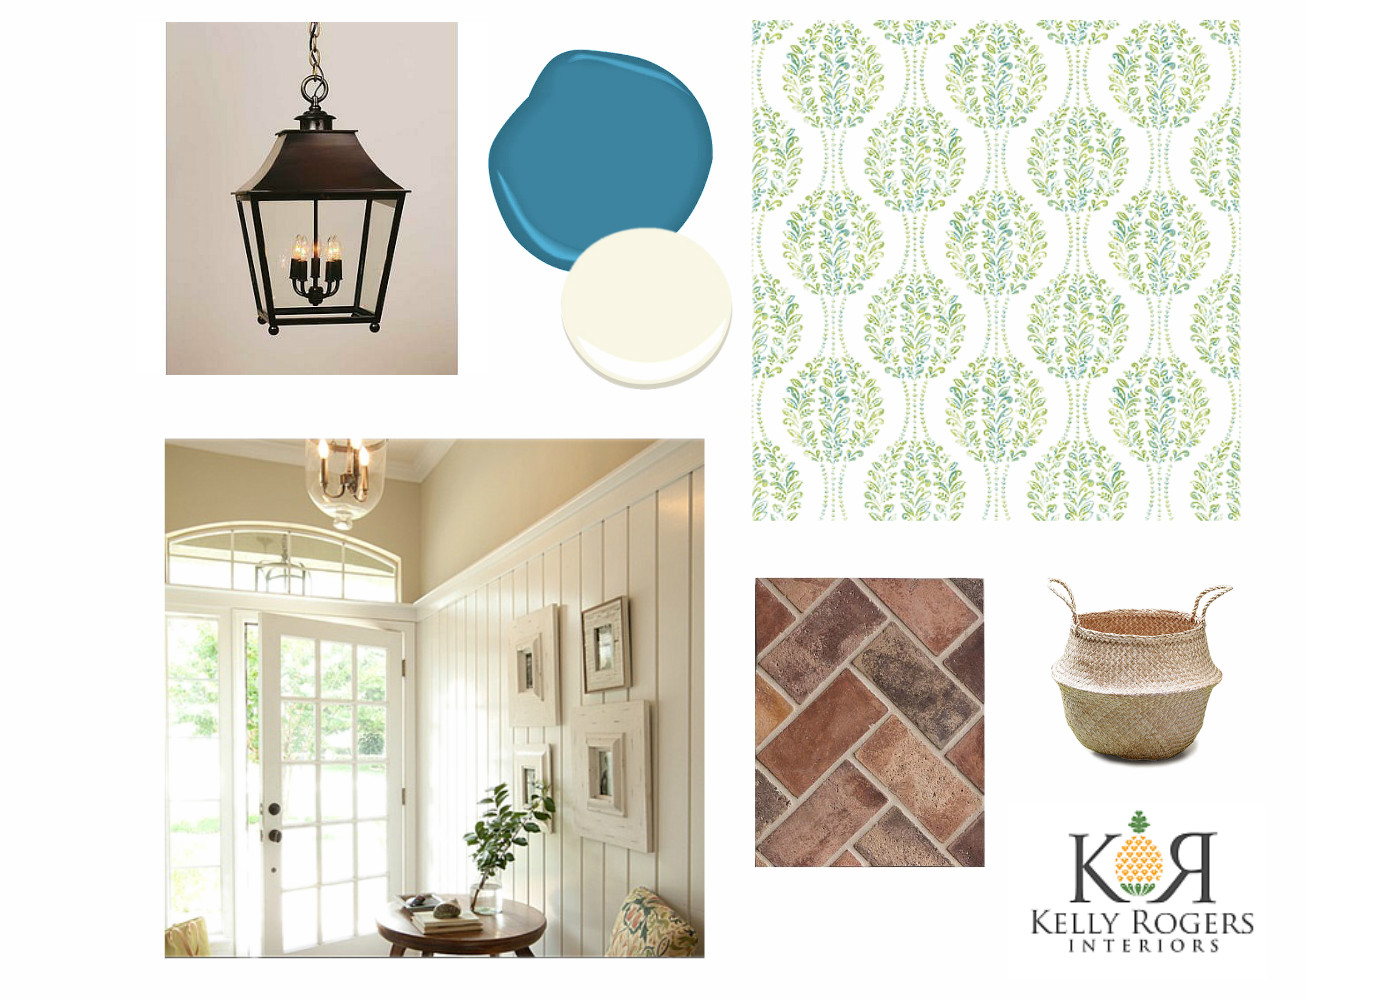 Day 107: Project 1896 (Our Home Renovation)...Special Mudroom Edition! | Kelly Rogers Interiors | Interiors for Families